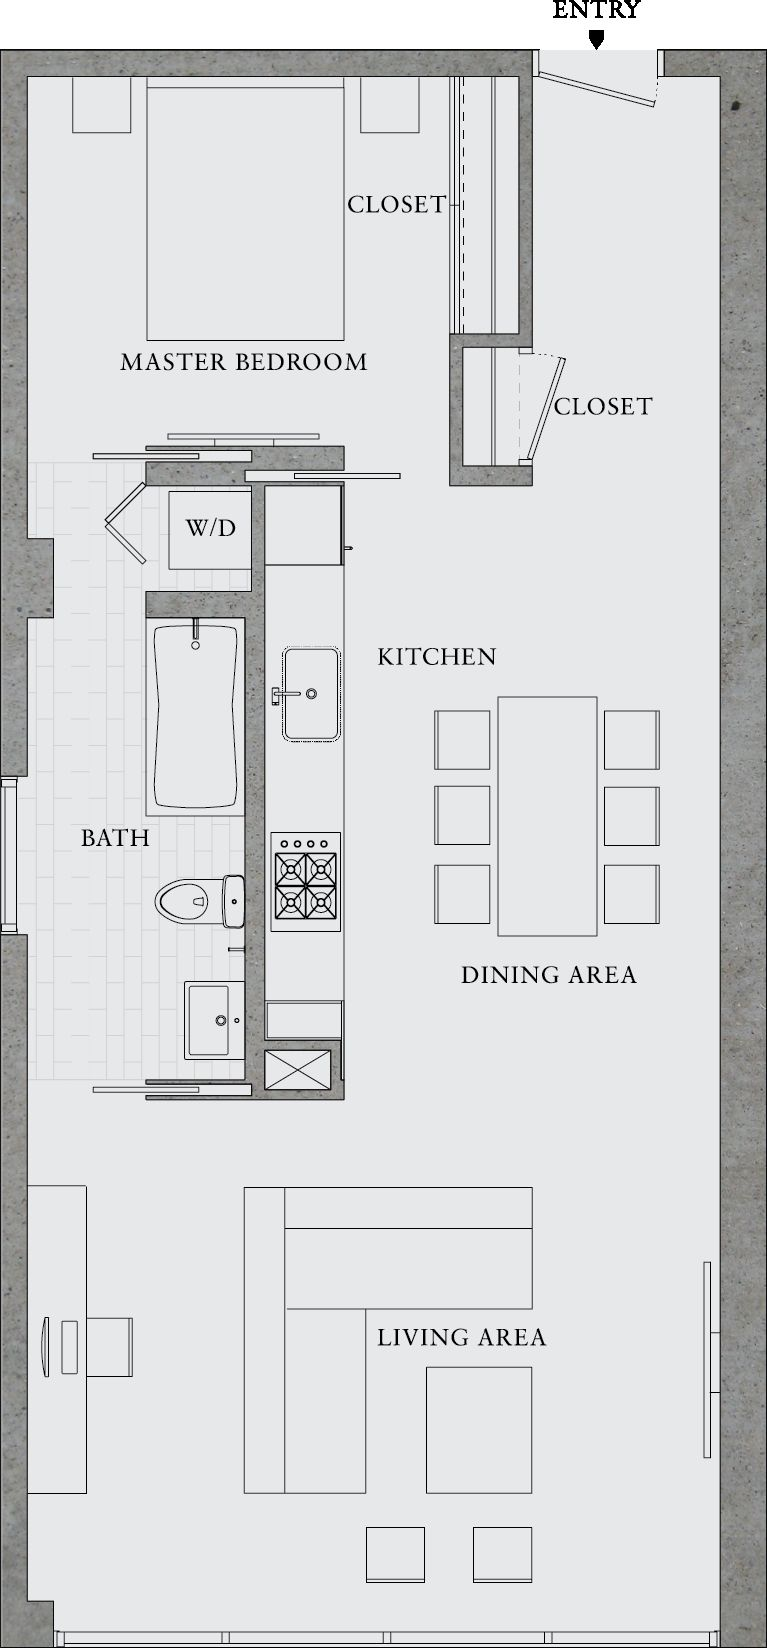 Exclusive Image Of Small Apartment Plans Layout Small Apartment Plans Layout Great Simple Design Small Apartment Plans House Plans Building A Container Home